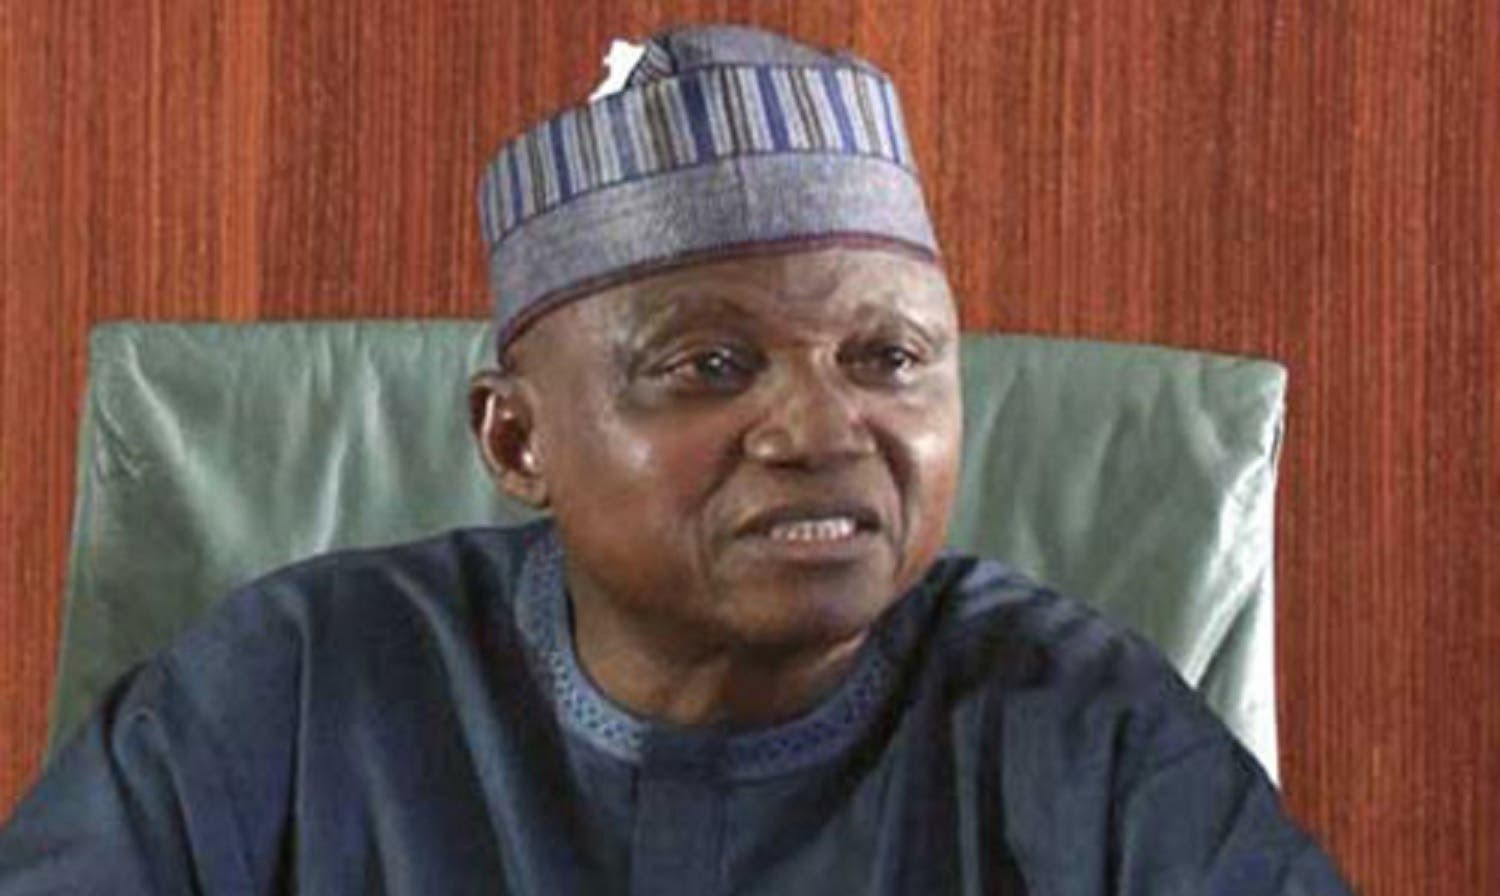 PRESIDENT BUHARI'S ADMINISTRATION IS THE HEALTHIEST SINCE 1999. WE RESPECT CITIZENS' RIGHTS – GARBA SHEHU (PHOTOS)